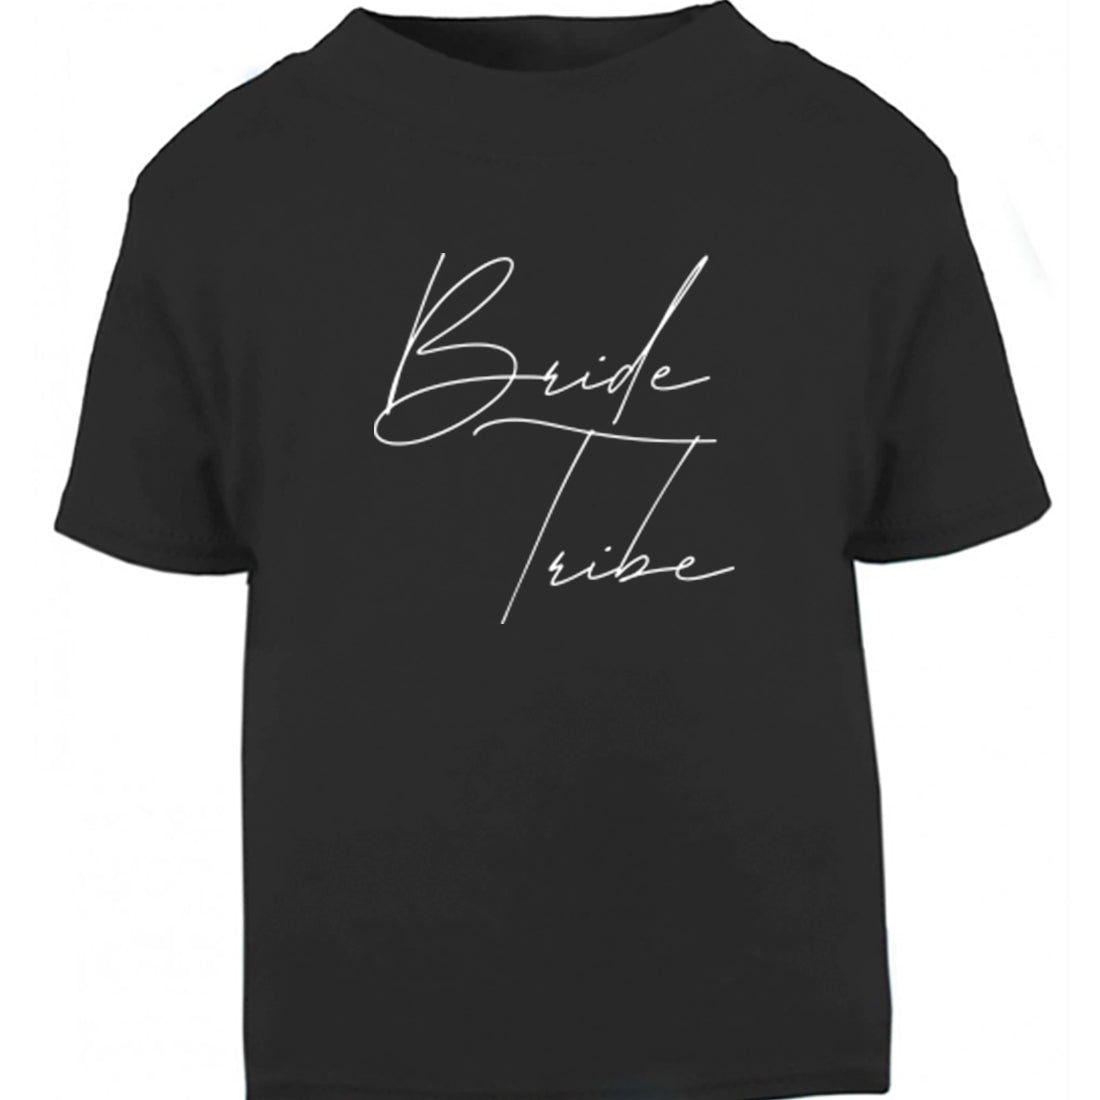 Bride Tribe Childrens Ages 3/4-12/14 Unisex Fit T-Shirt K2373